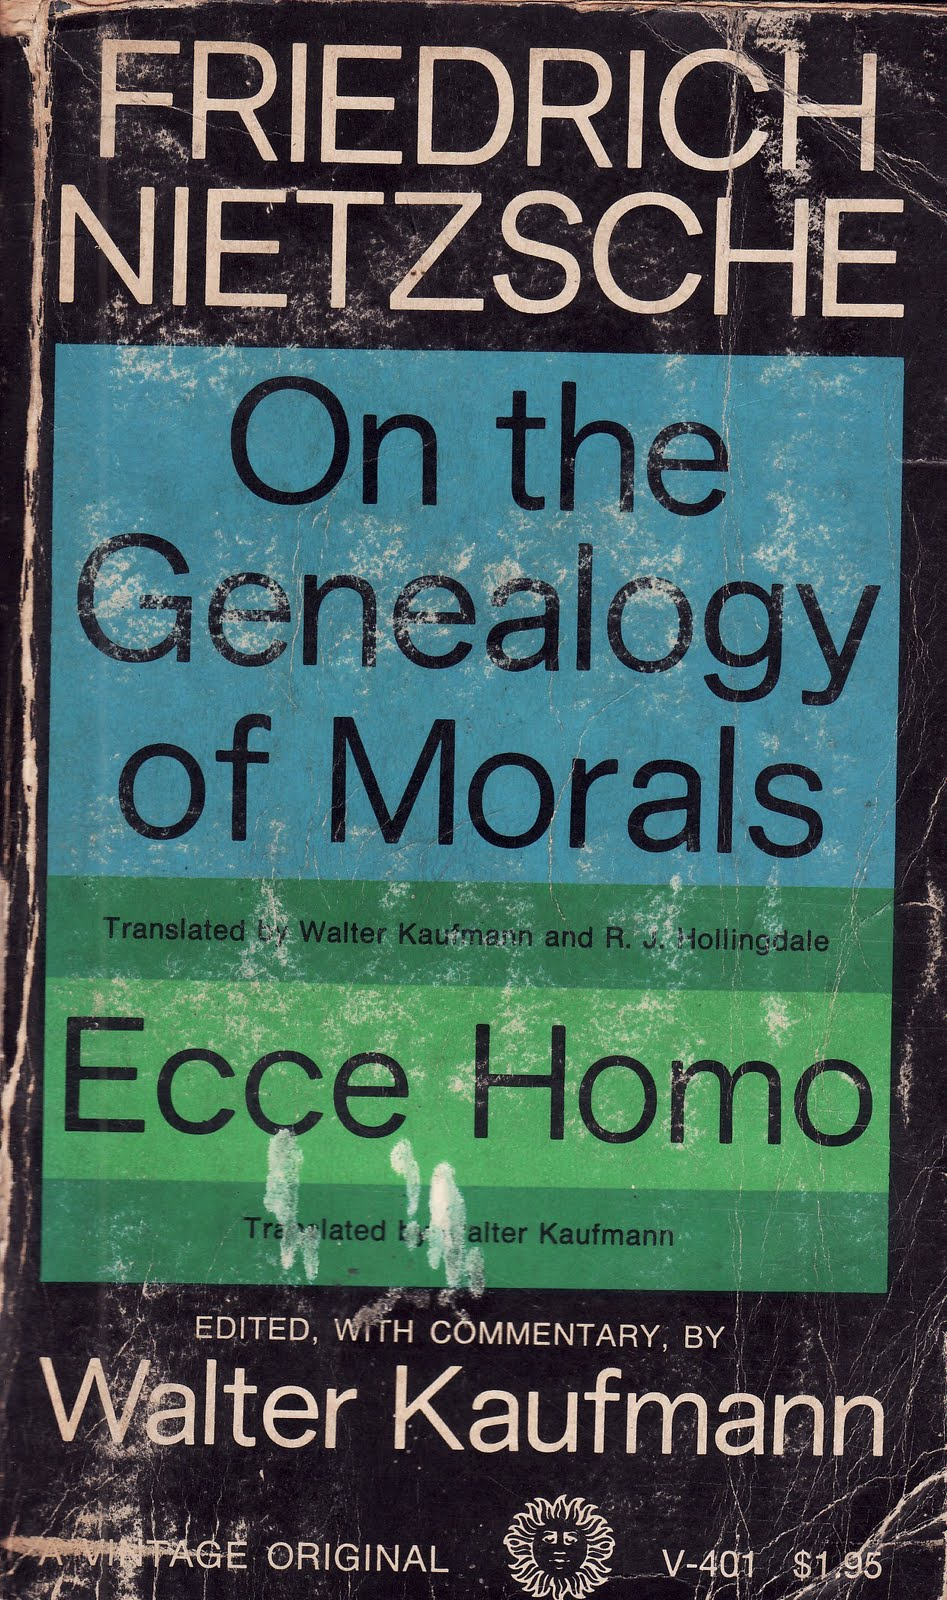 nietzsche on the genealogy of morality first essay First essay good and evil, good and bad 1 these english psychologists whom we have to thank for the only attempts up to this point to produce a history of the origins of morality—in themselves they serve up to us no small riddle.